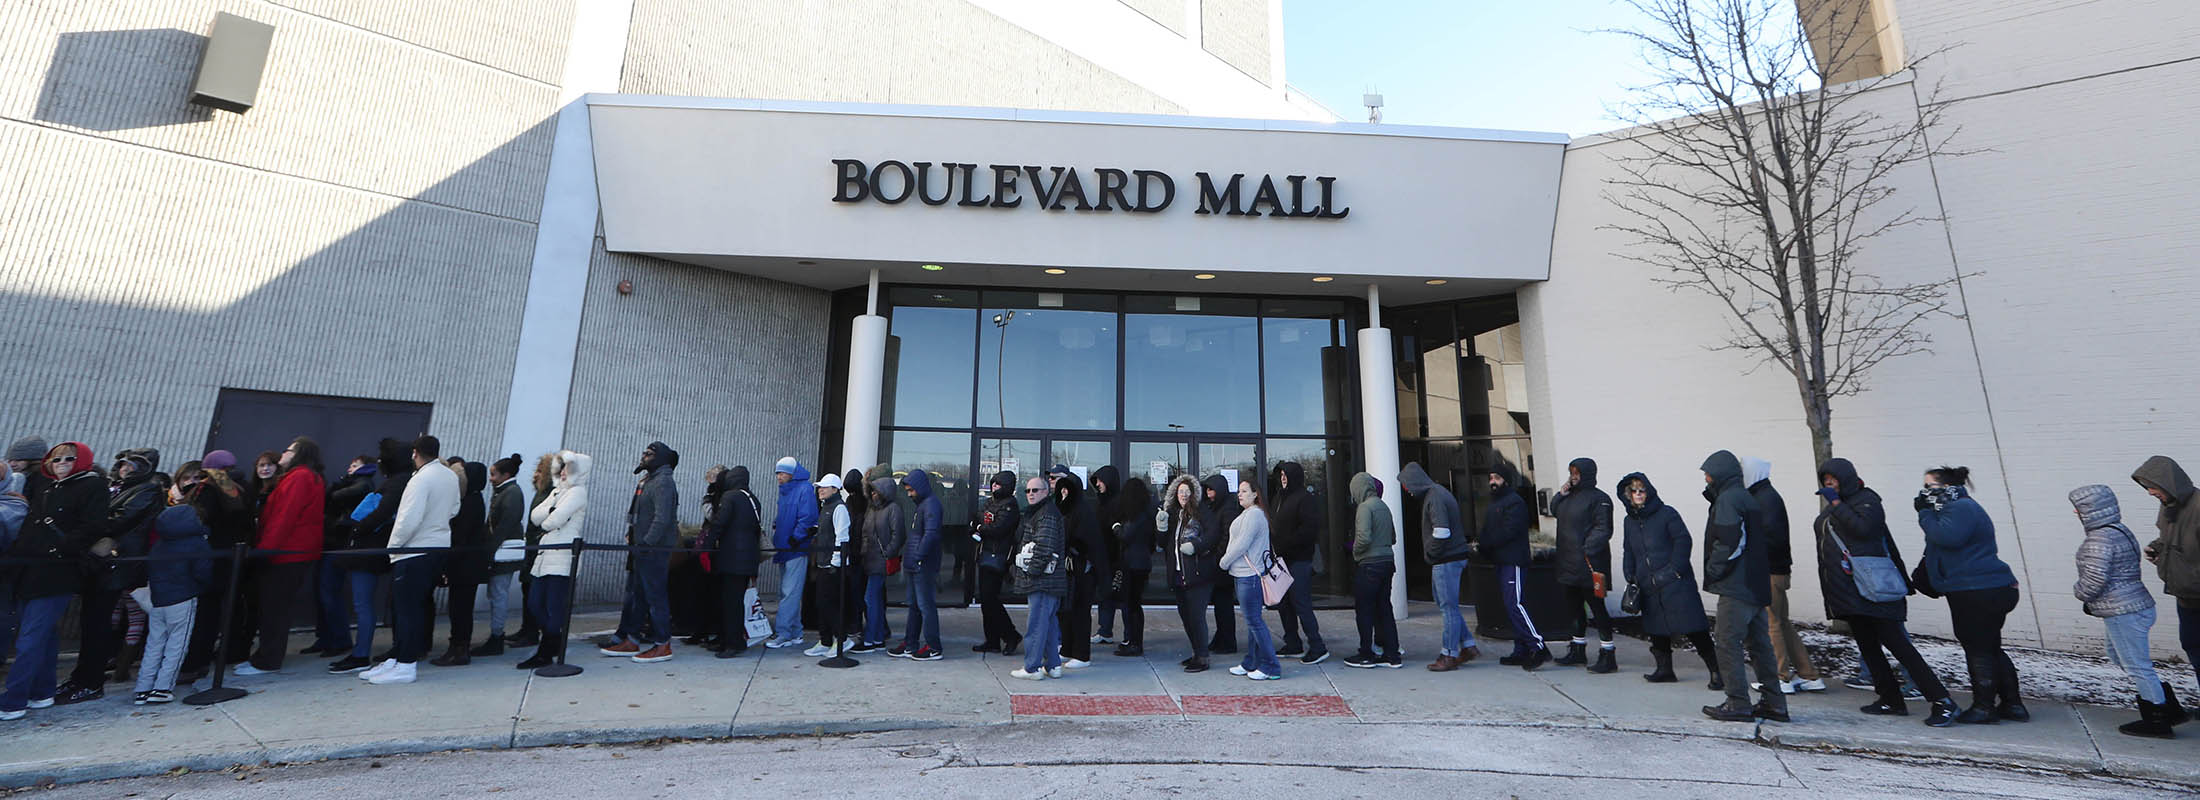 Black Friday shopping started early at JC Penney at the Boulevard Mall on Nov. 22, 2018. (Sharon Cantillon/News file photo)